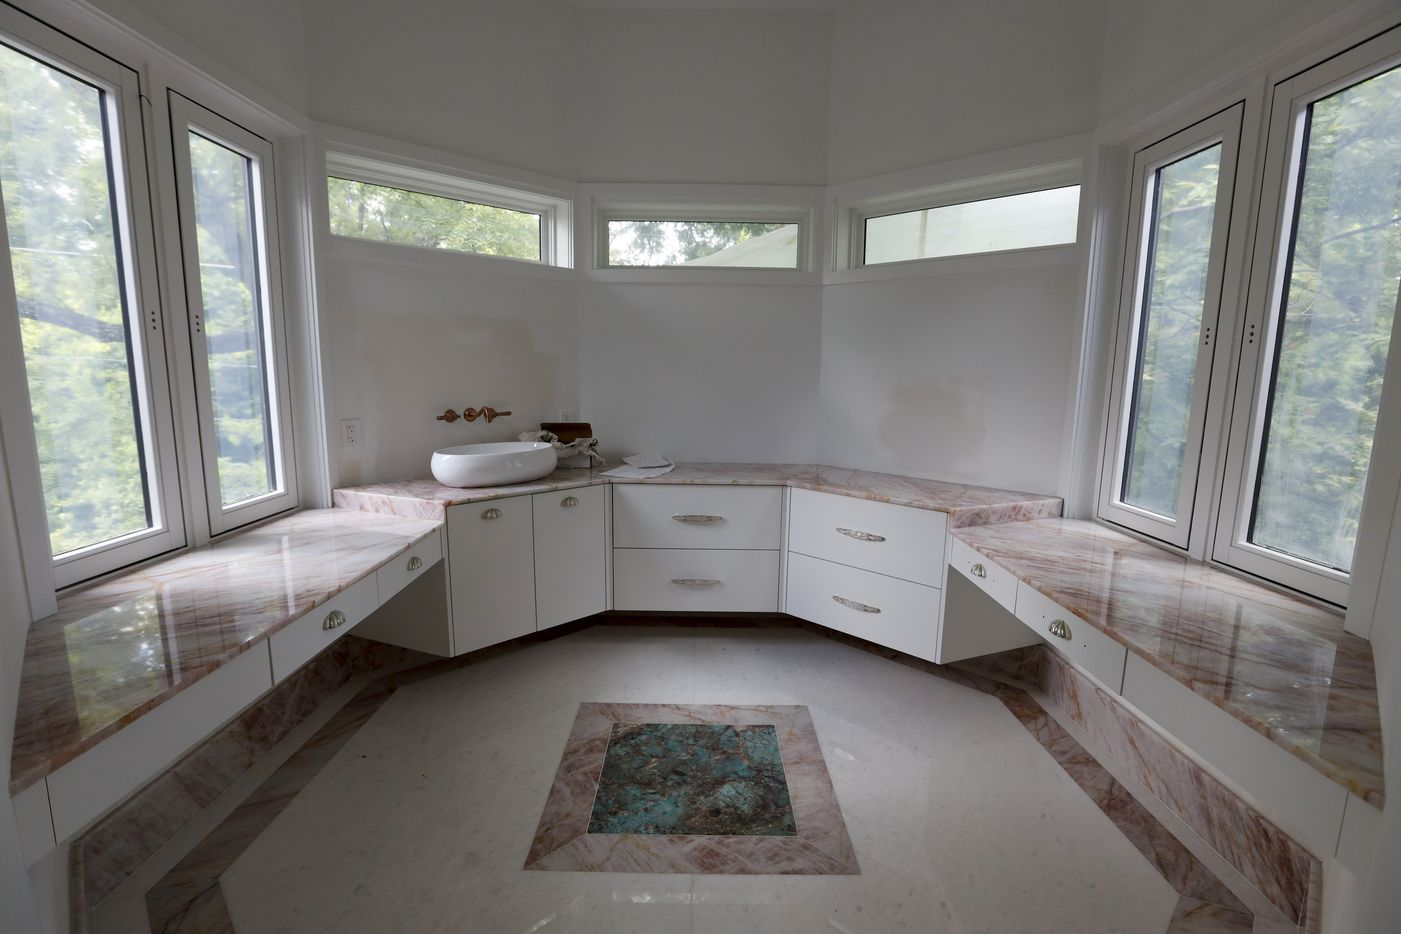 There's an octagonal vanity room in the master bathroom.